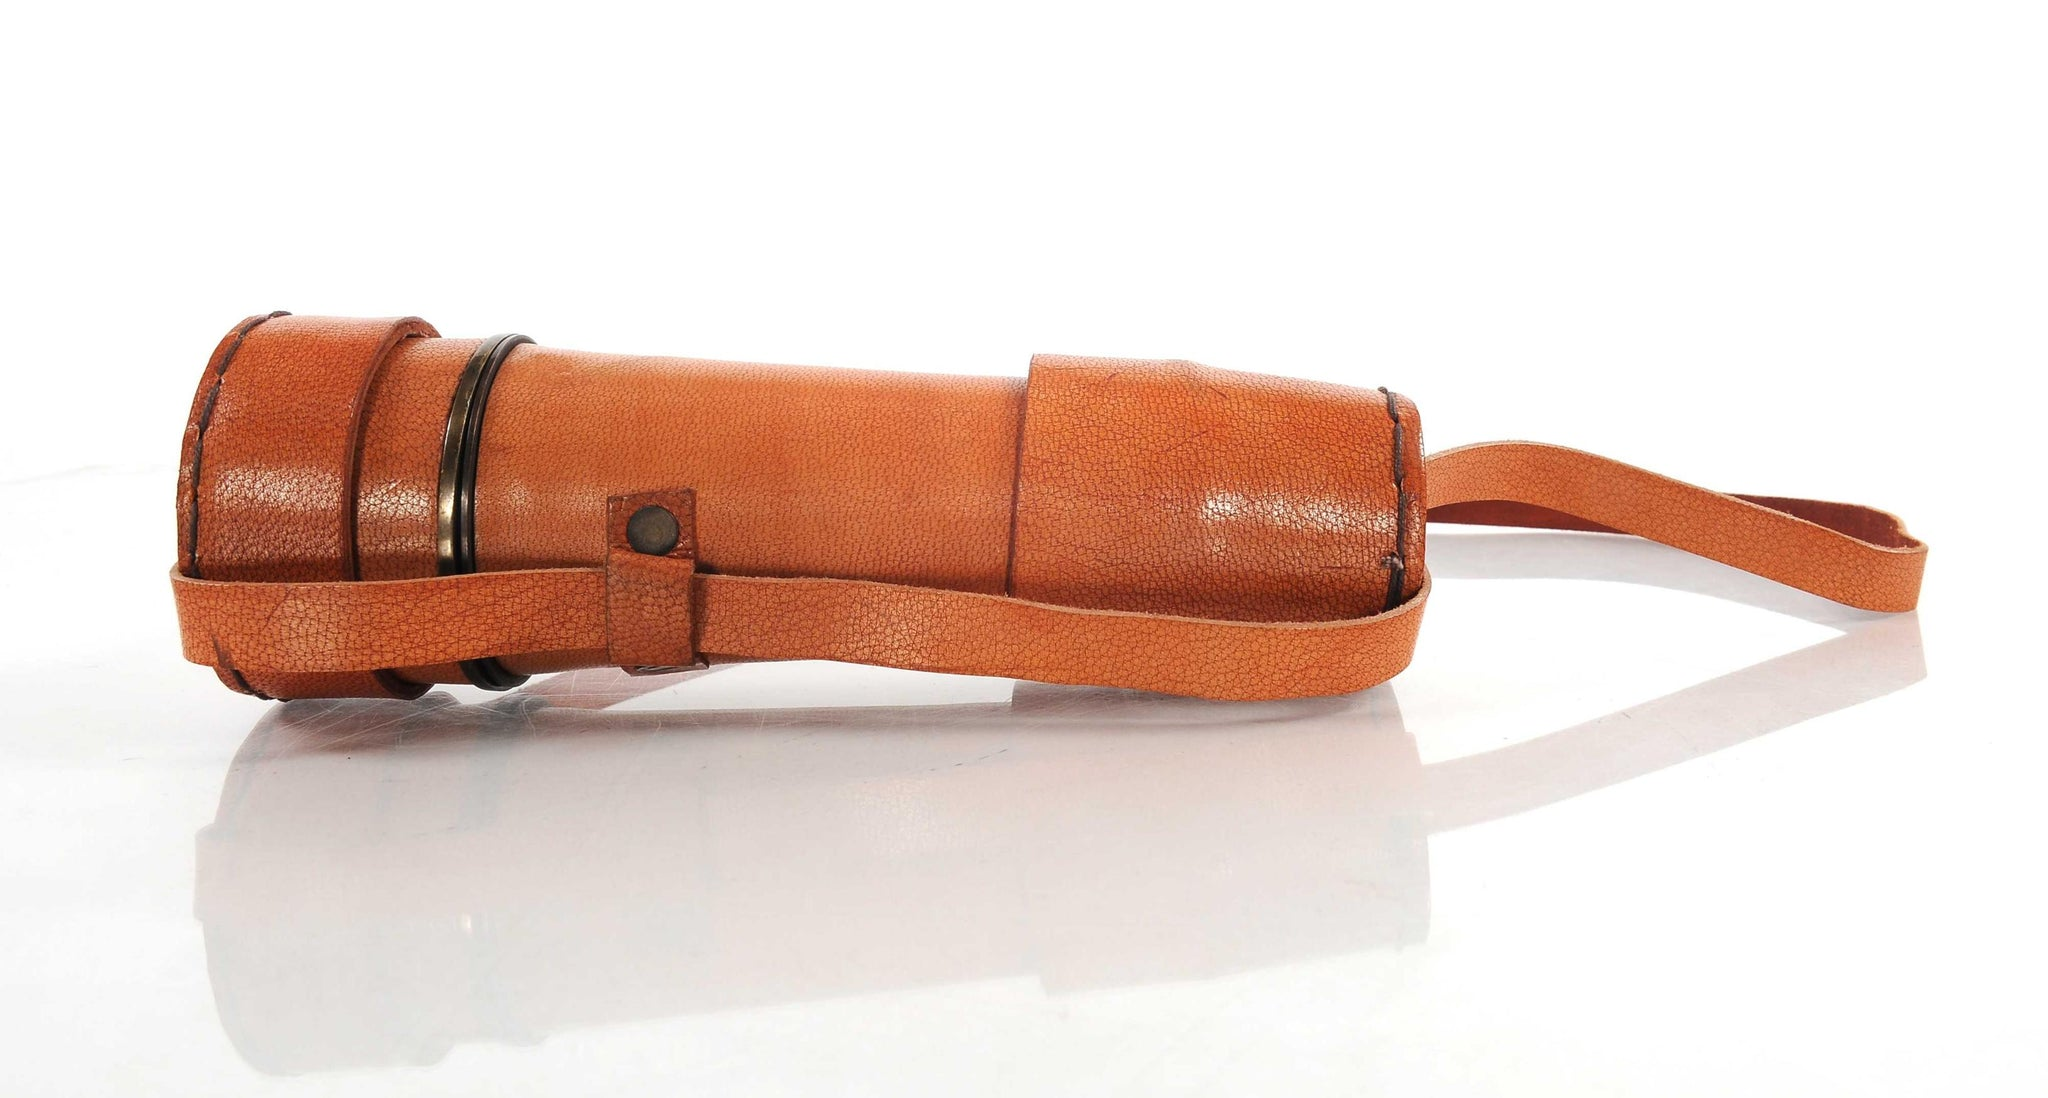 "2.25"" x 15"" x 2.25"" Handheld Telescope with Leather Overlay"